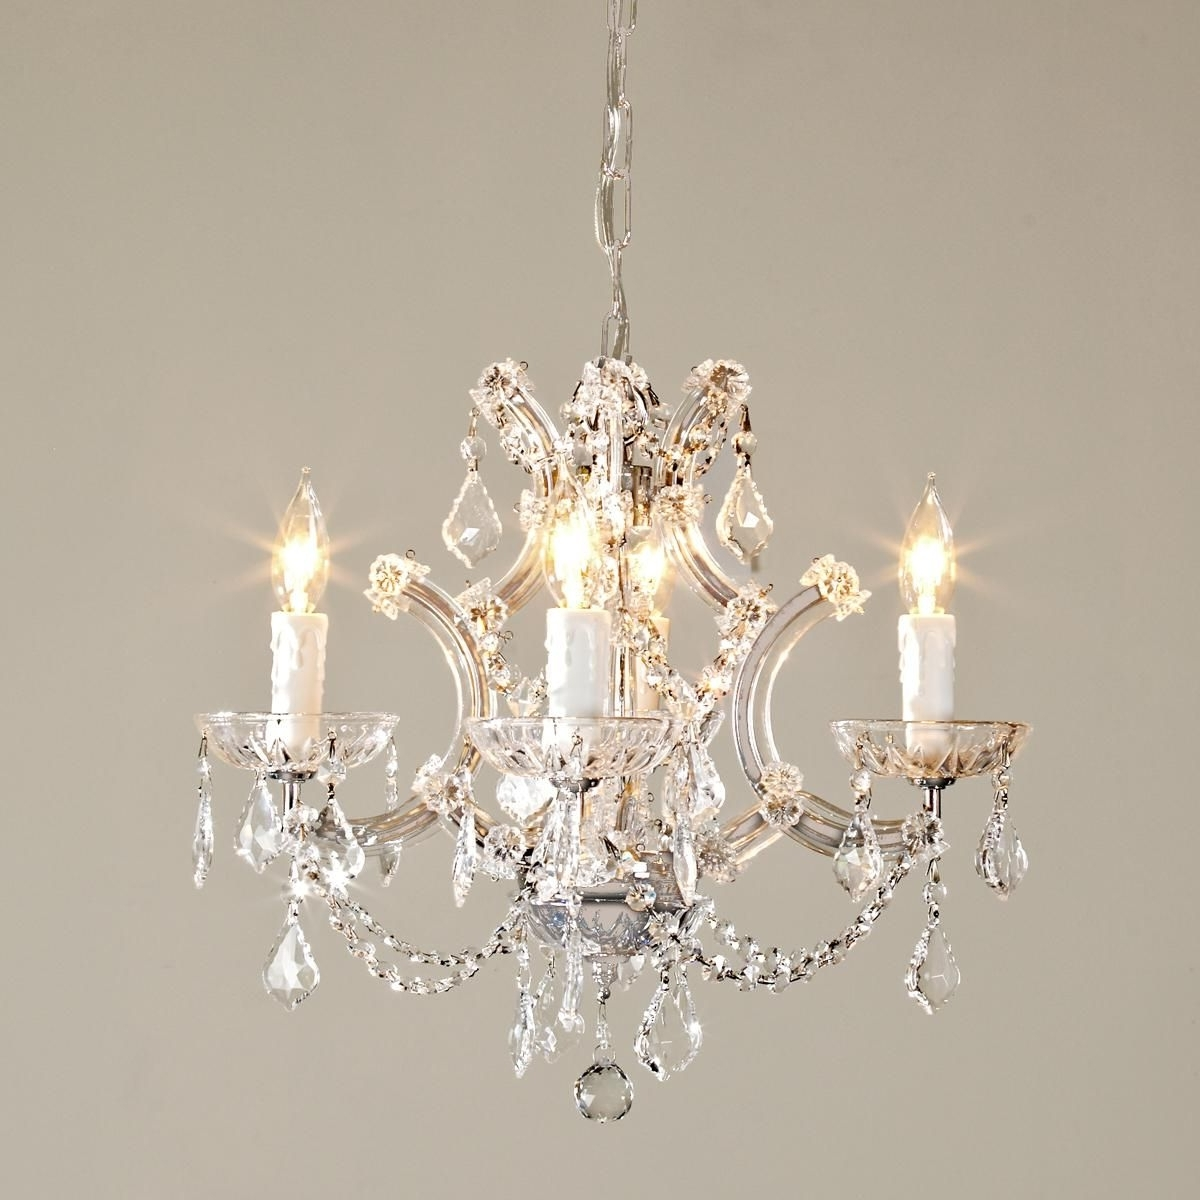 Chandeliers, Choices And Rounding For Crystal Chandelier Bathroom Lighting (View 5 of 20)